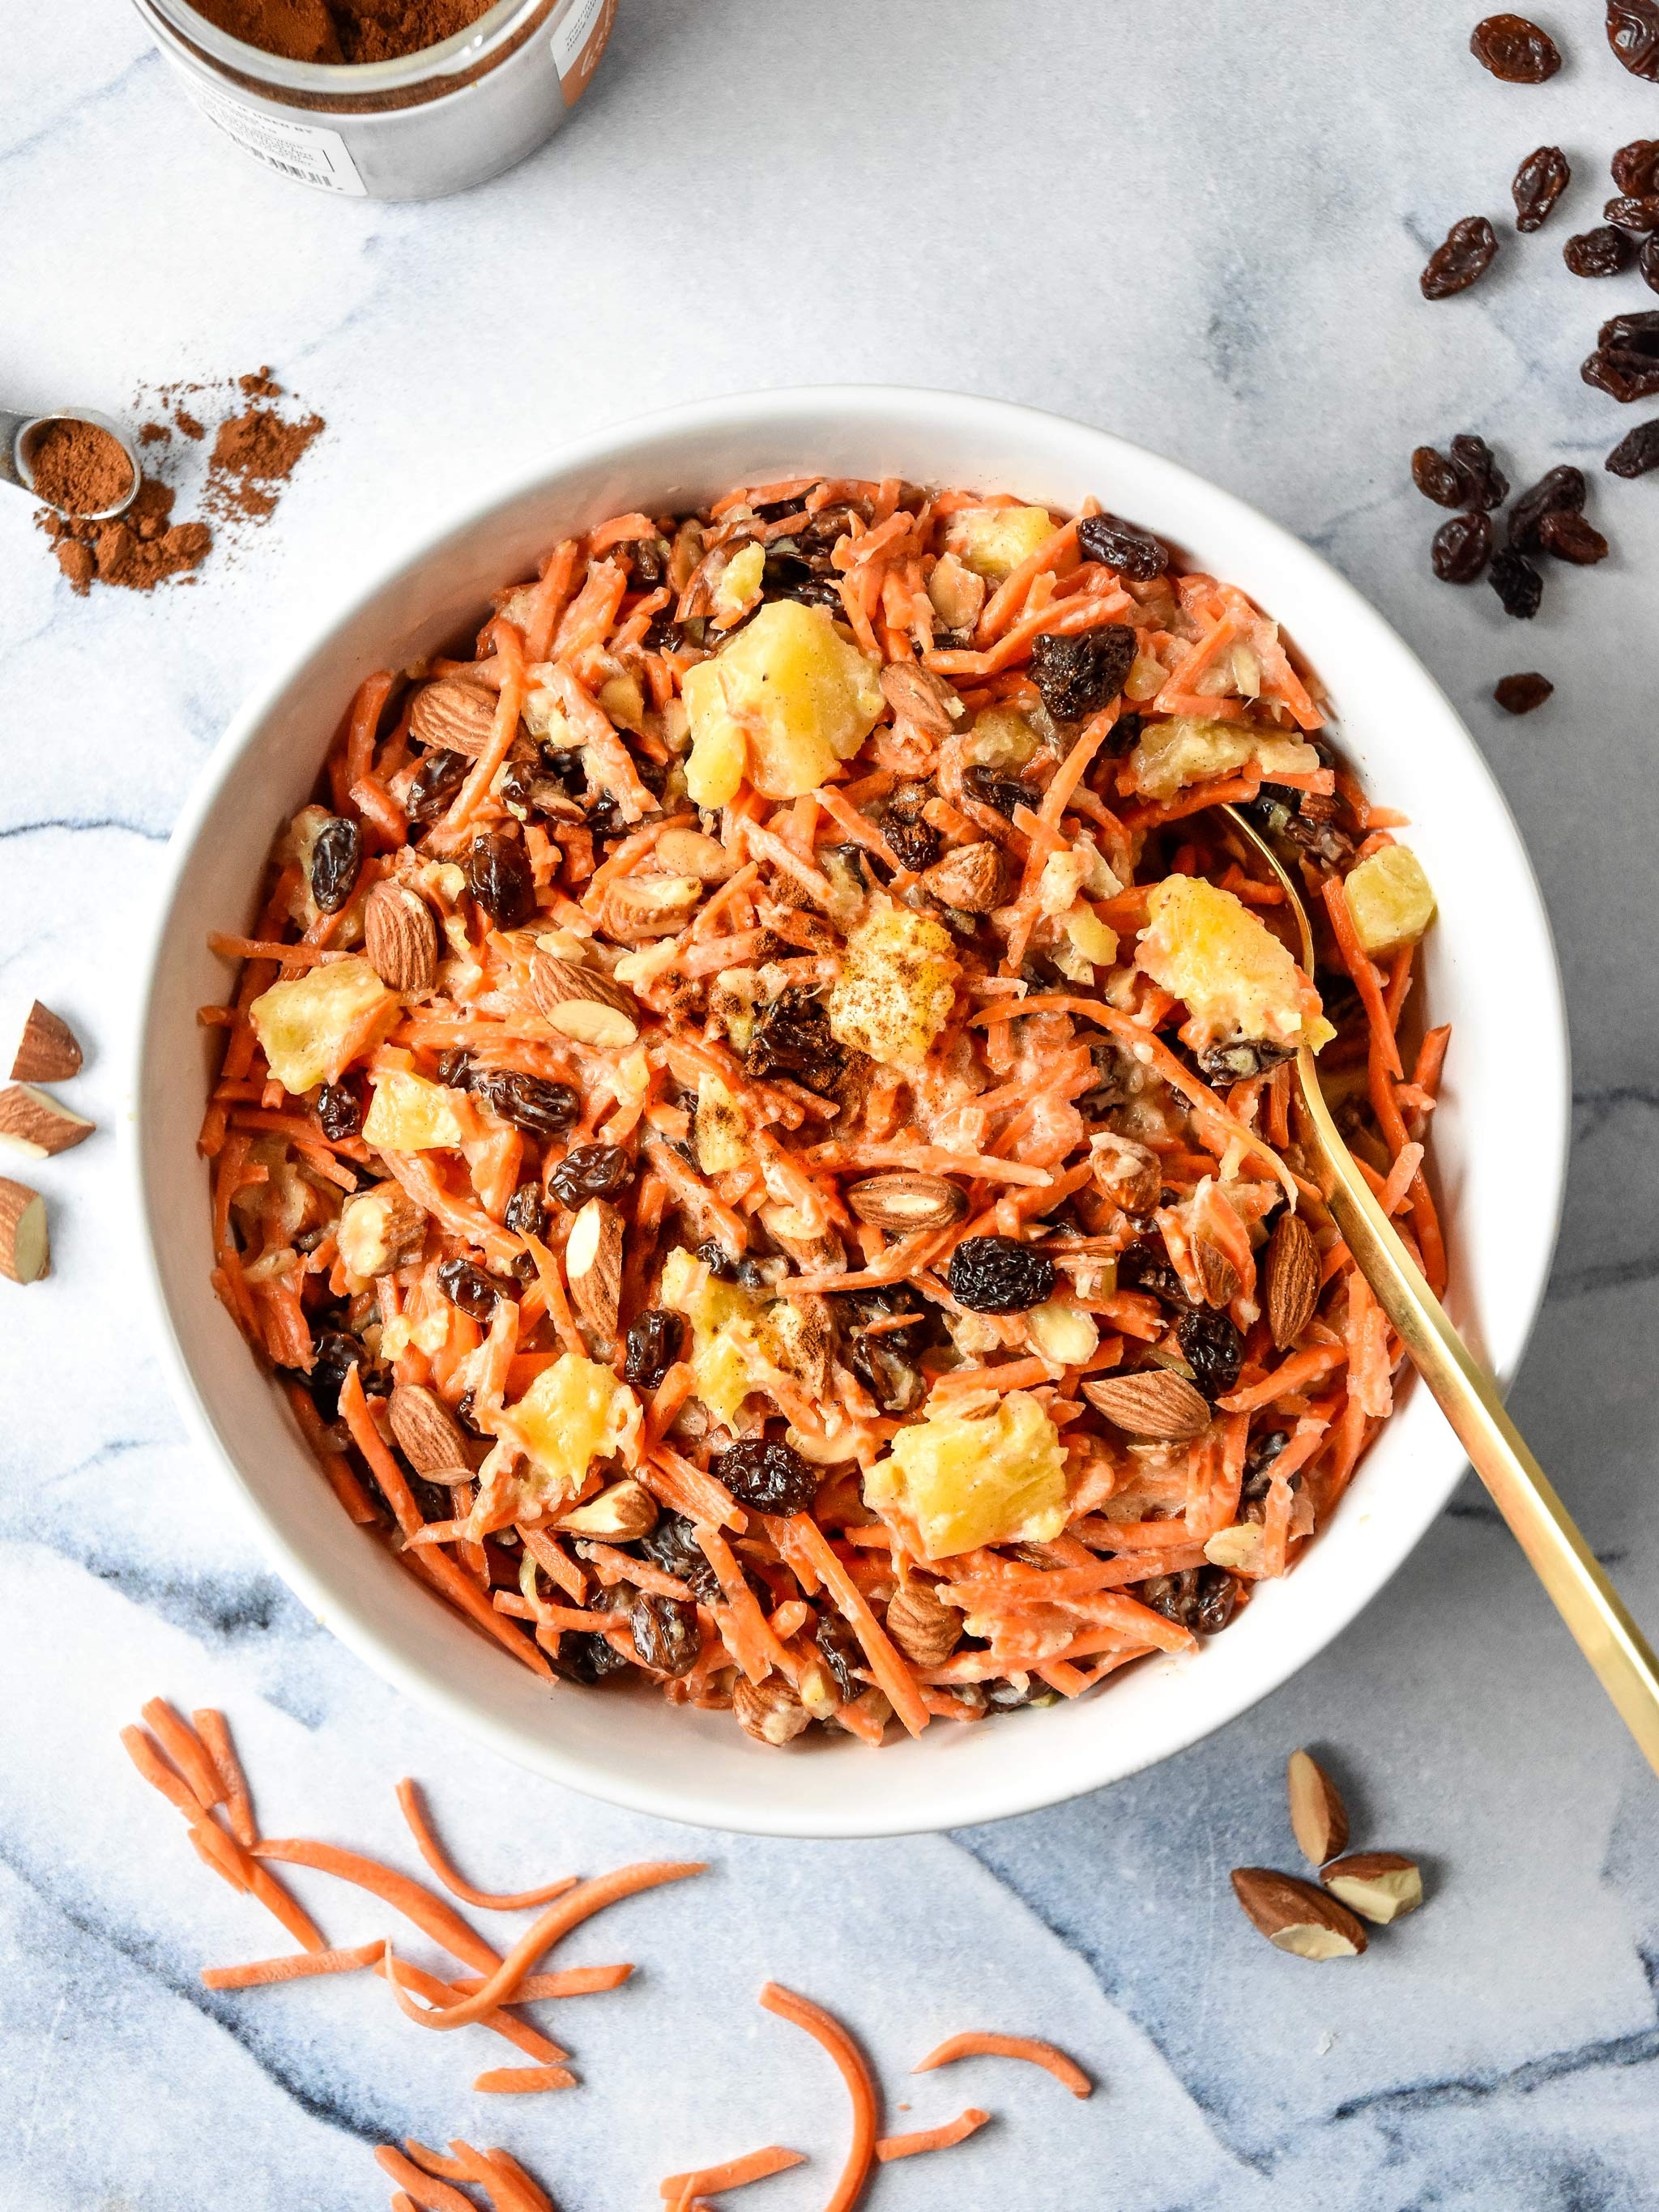 Cinnamon Raisin Carrot Salad in a bowl with a gold spoon